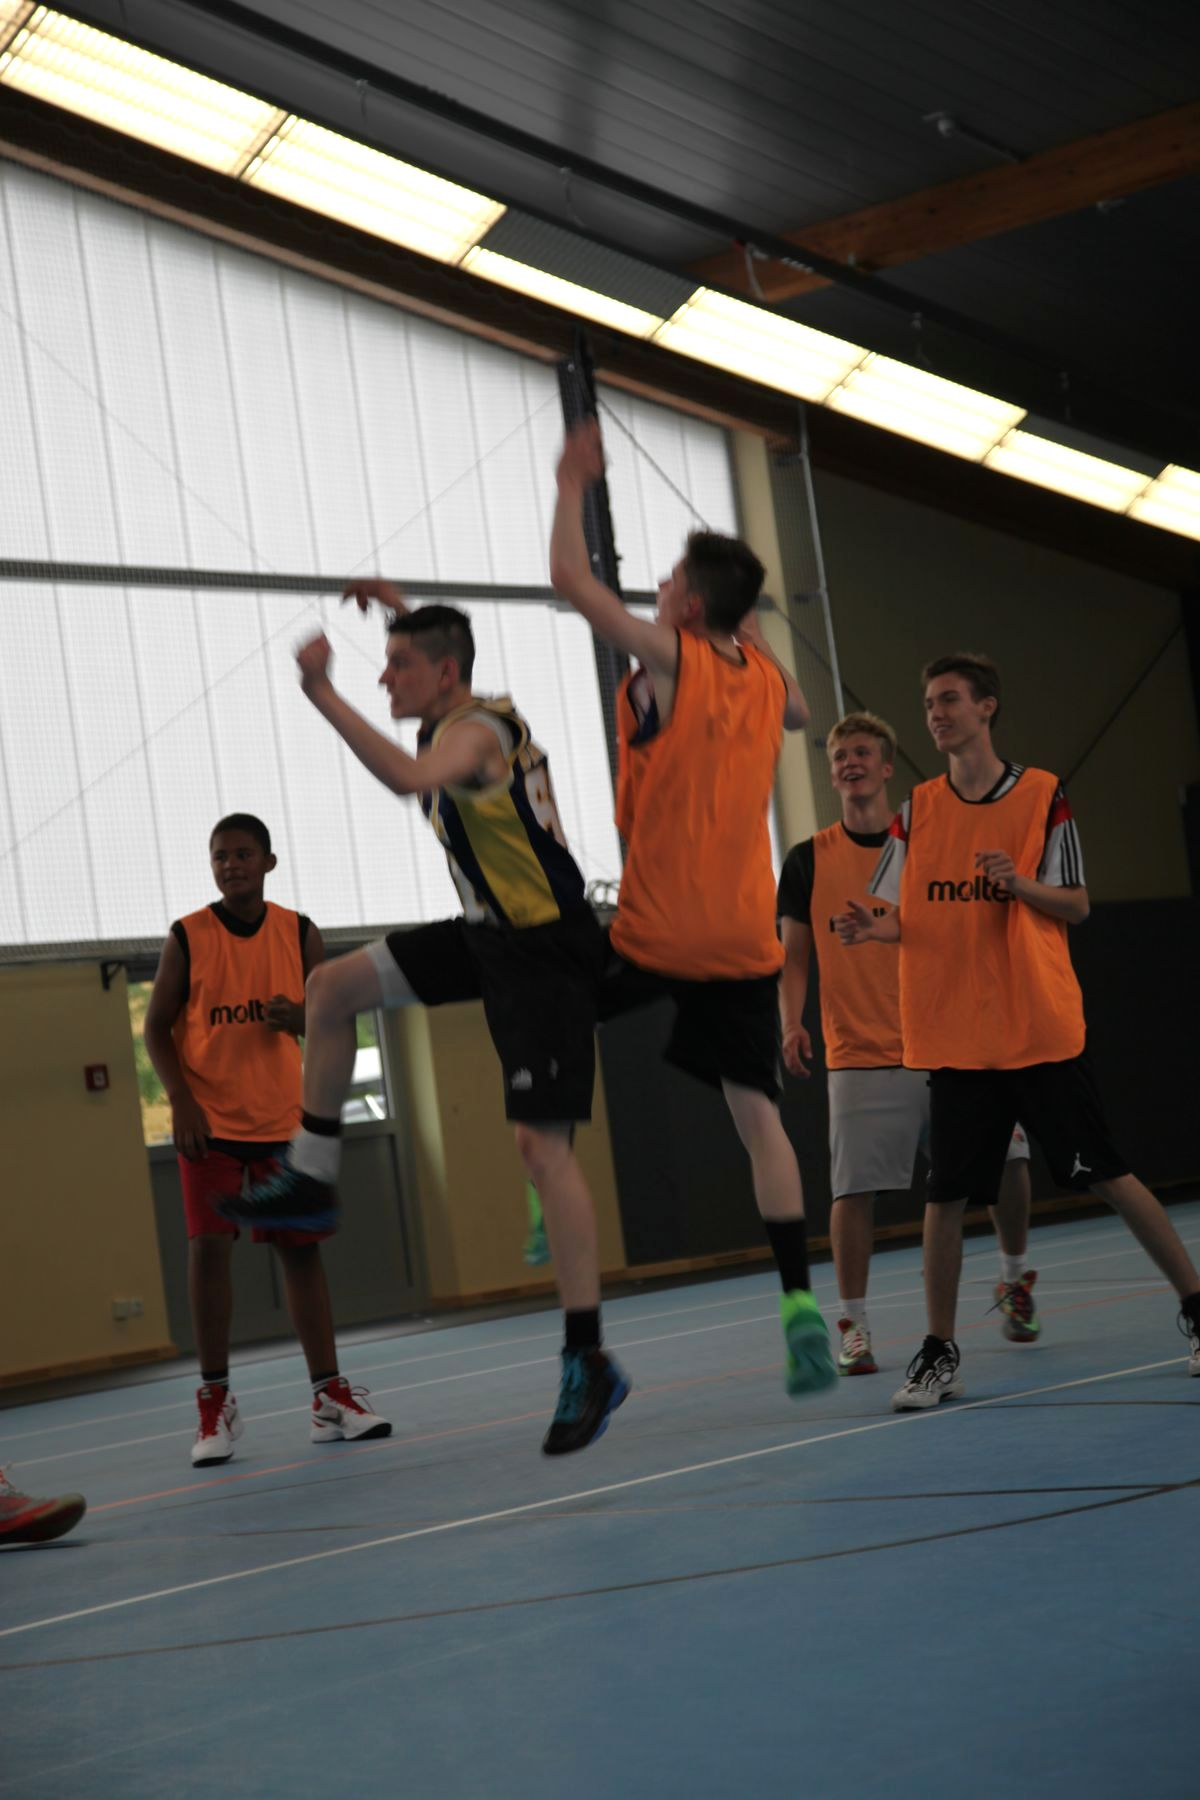 Sommer-Bball-Camp 2014_Tag 1 (23)